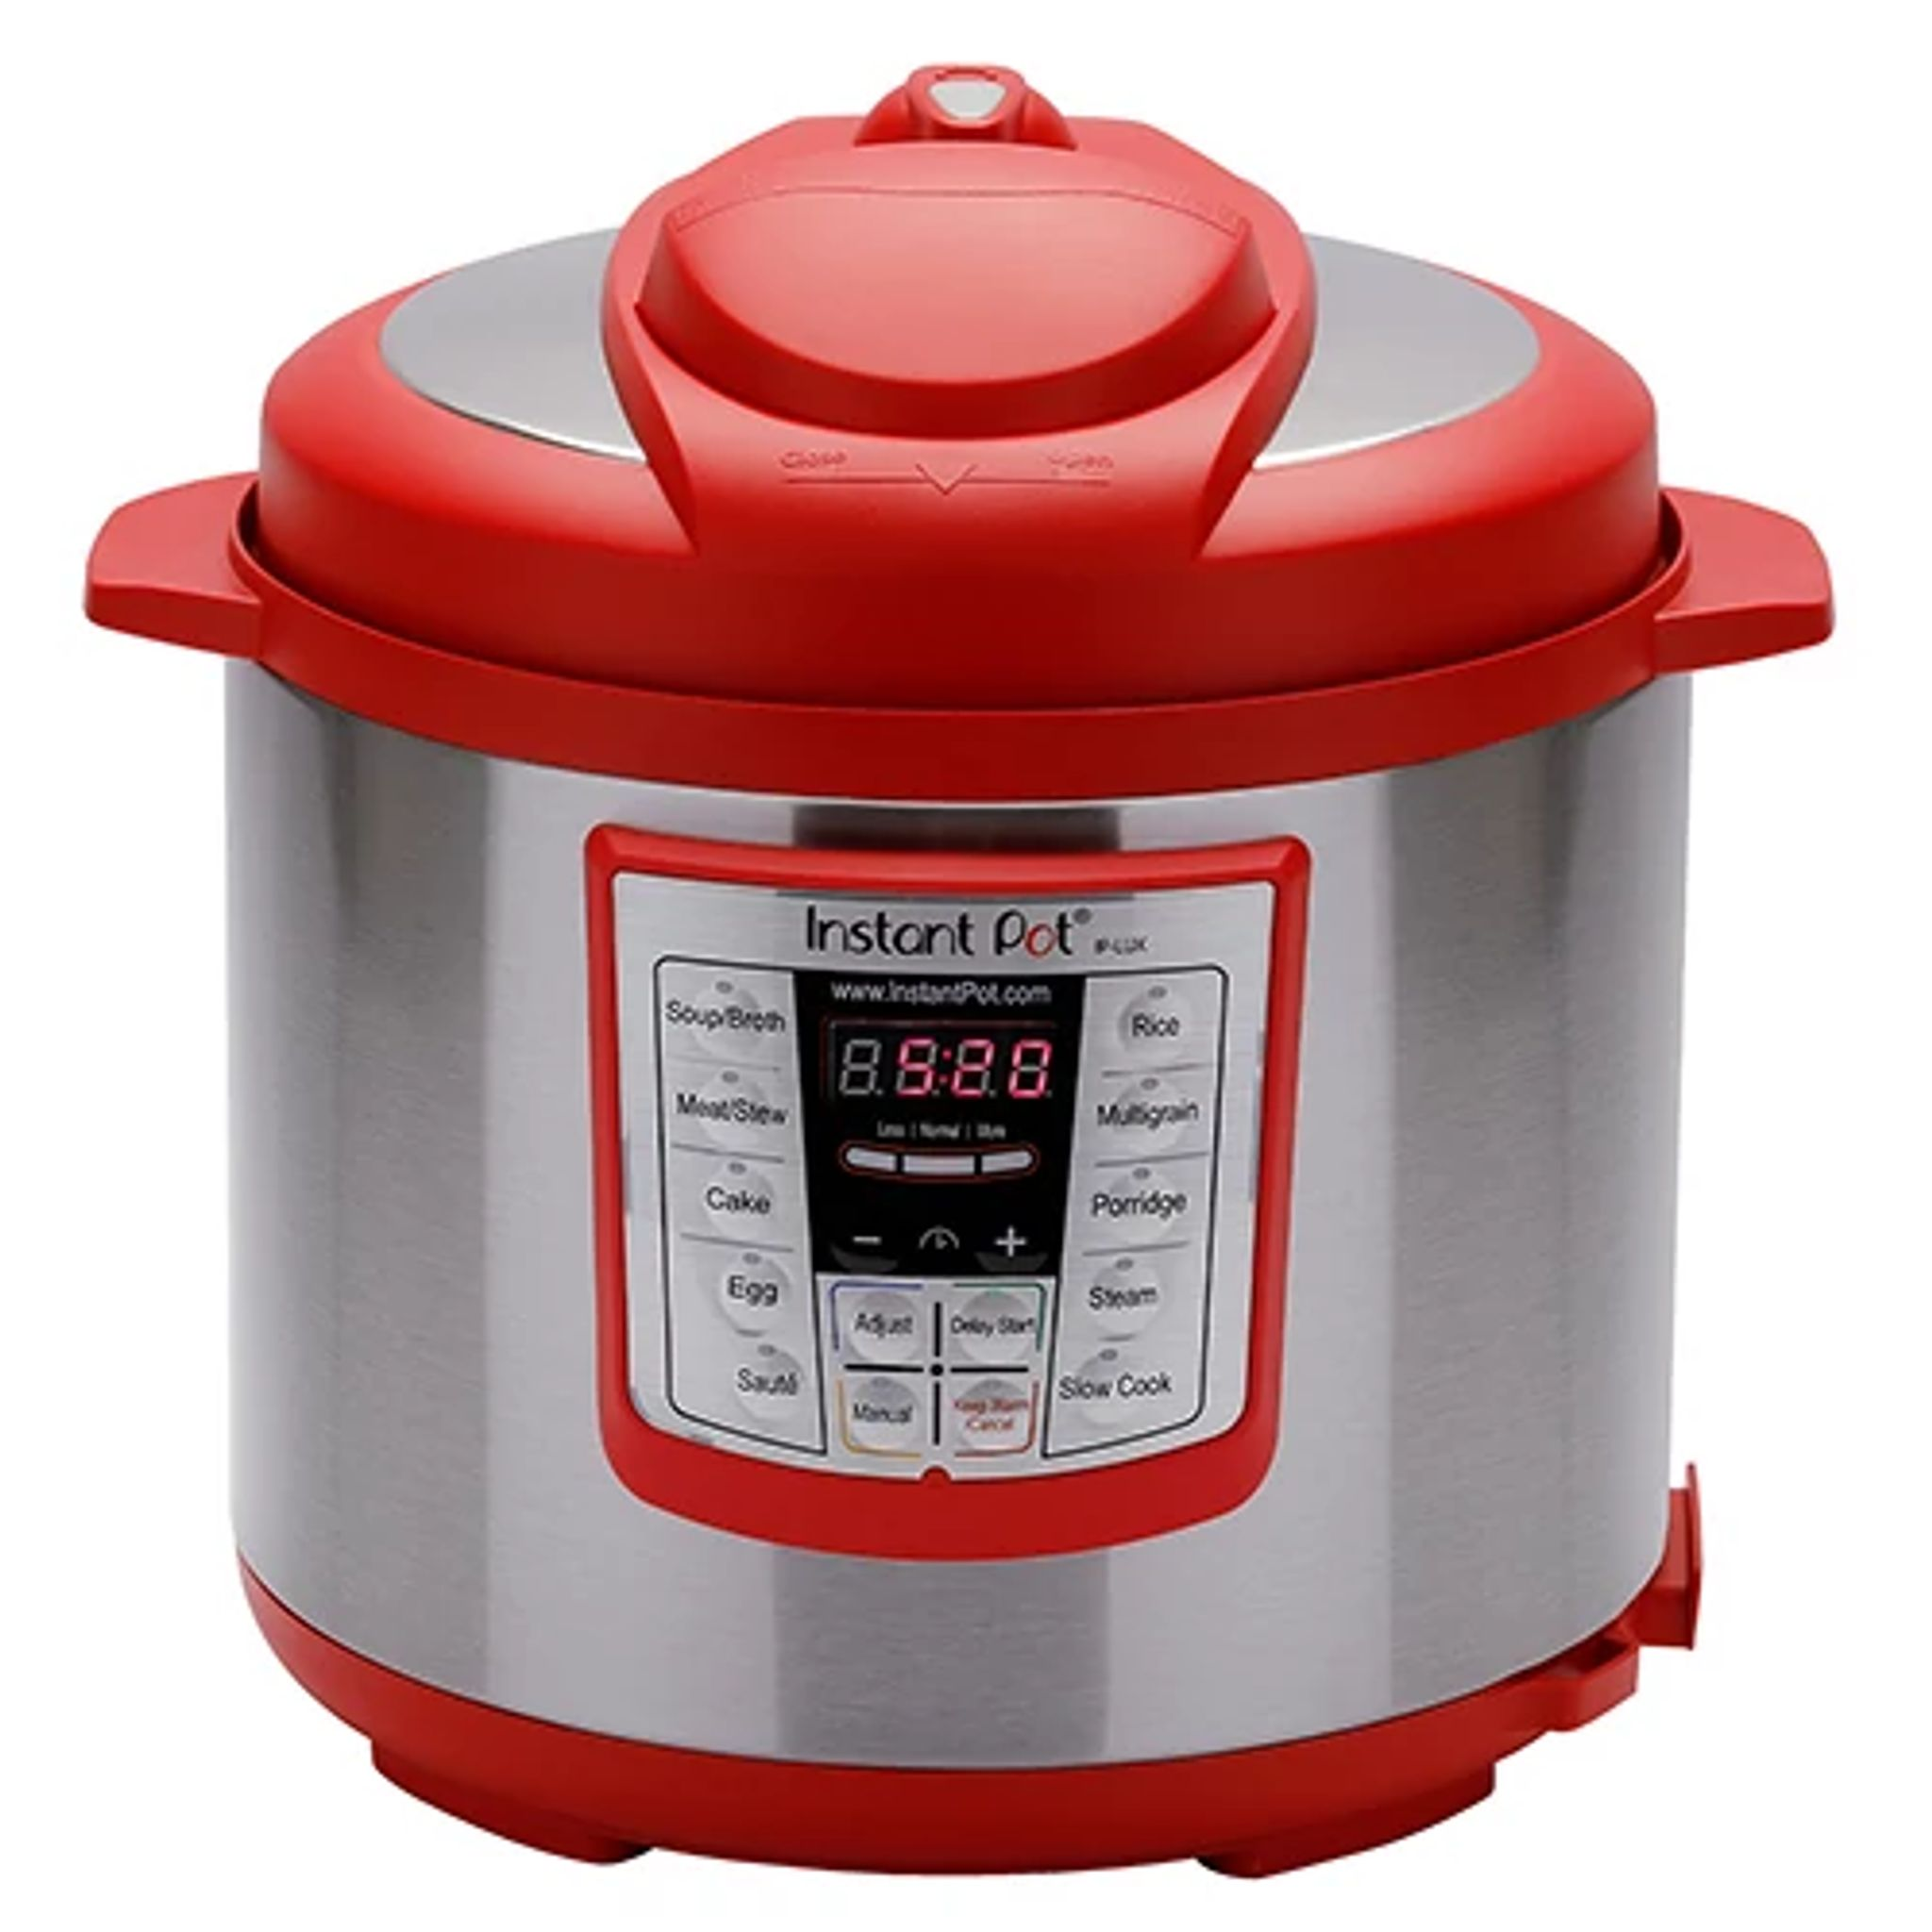 Instant Pot Lux 6-quart Multi-Use Pressure Cooker, Red